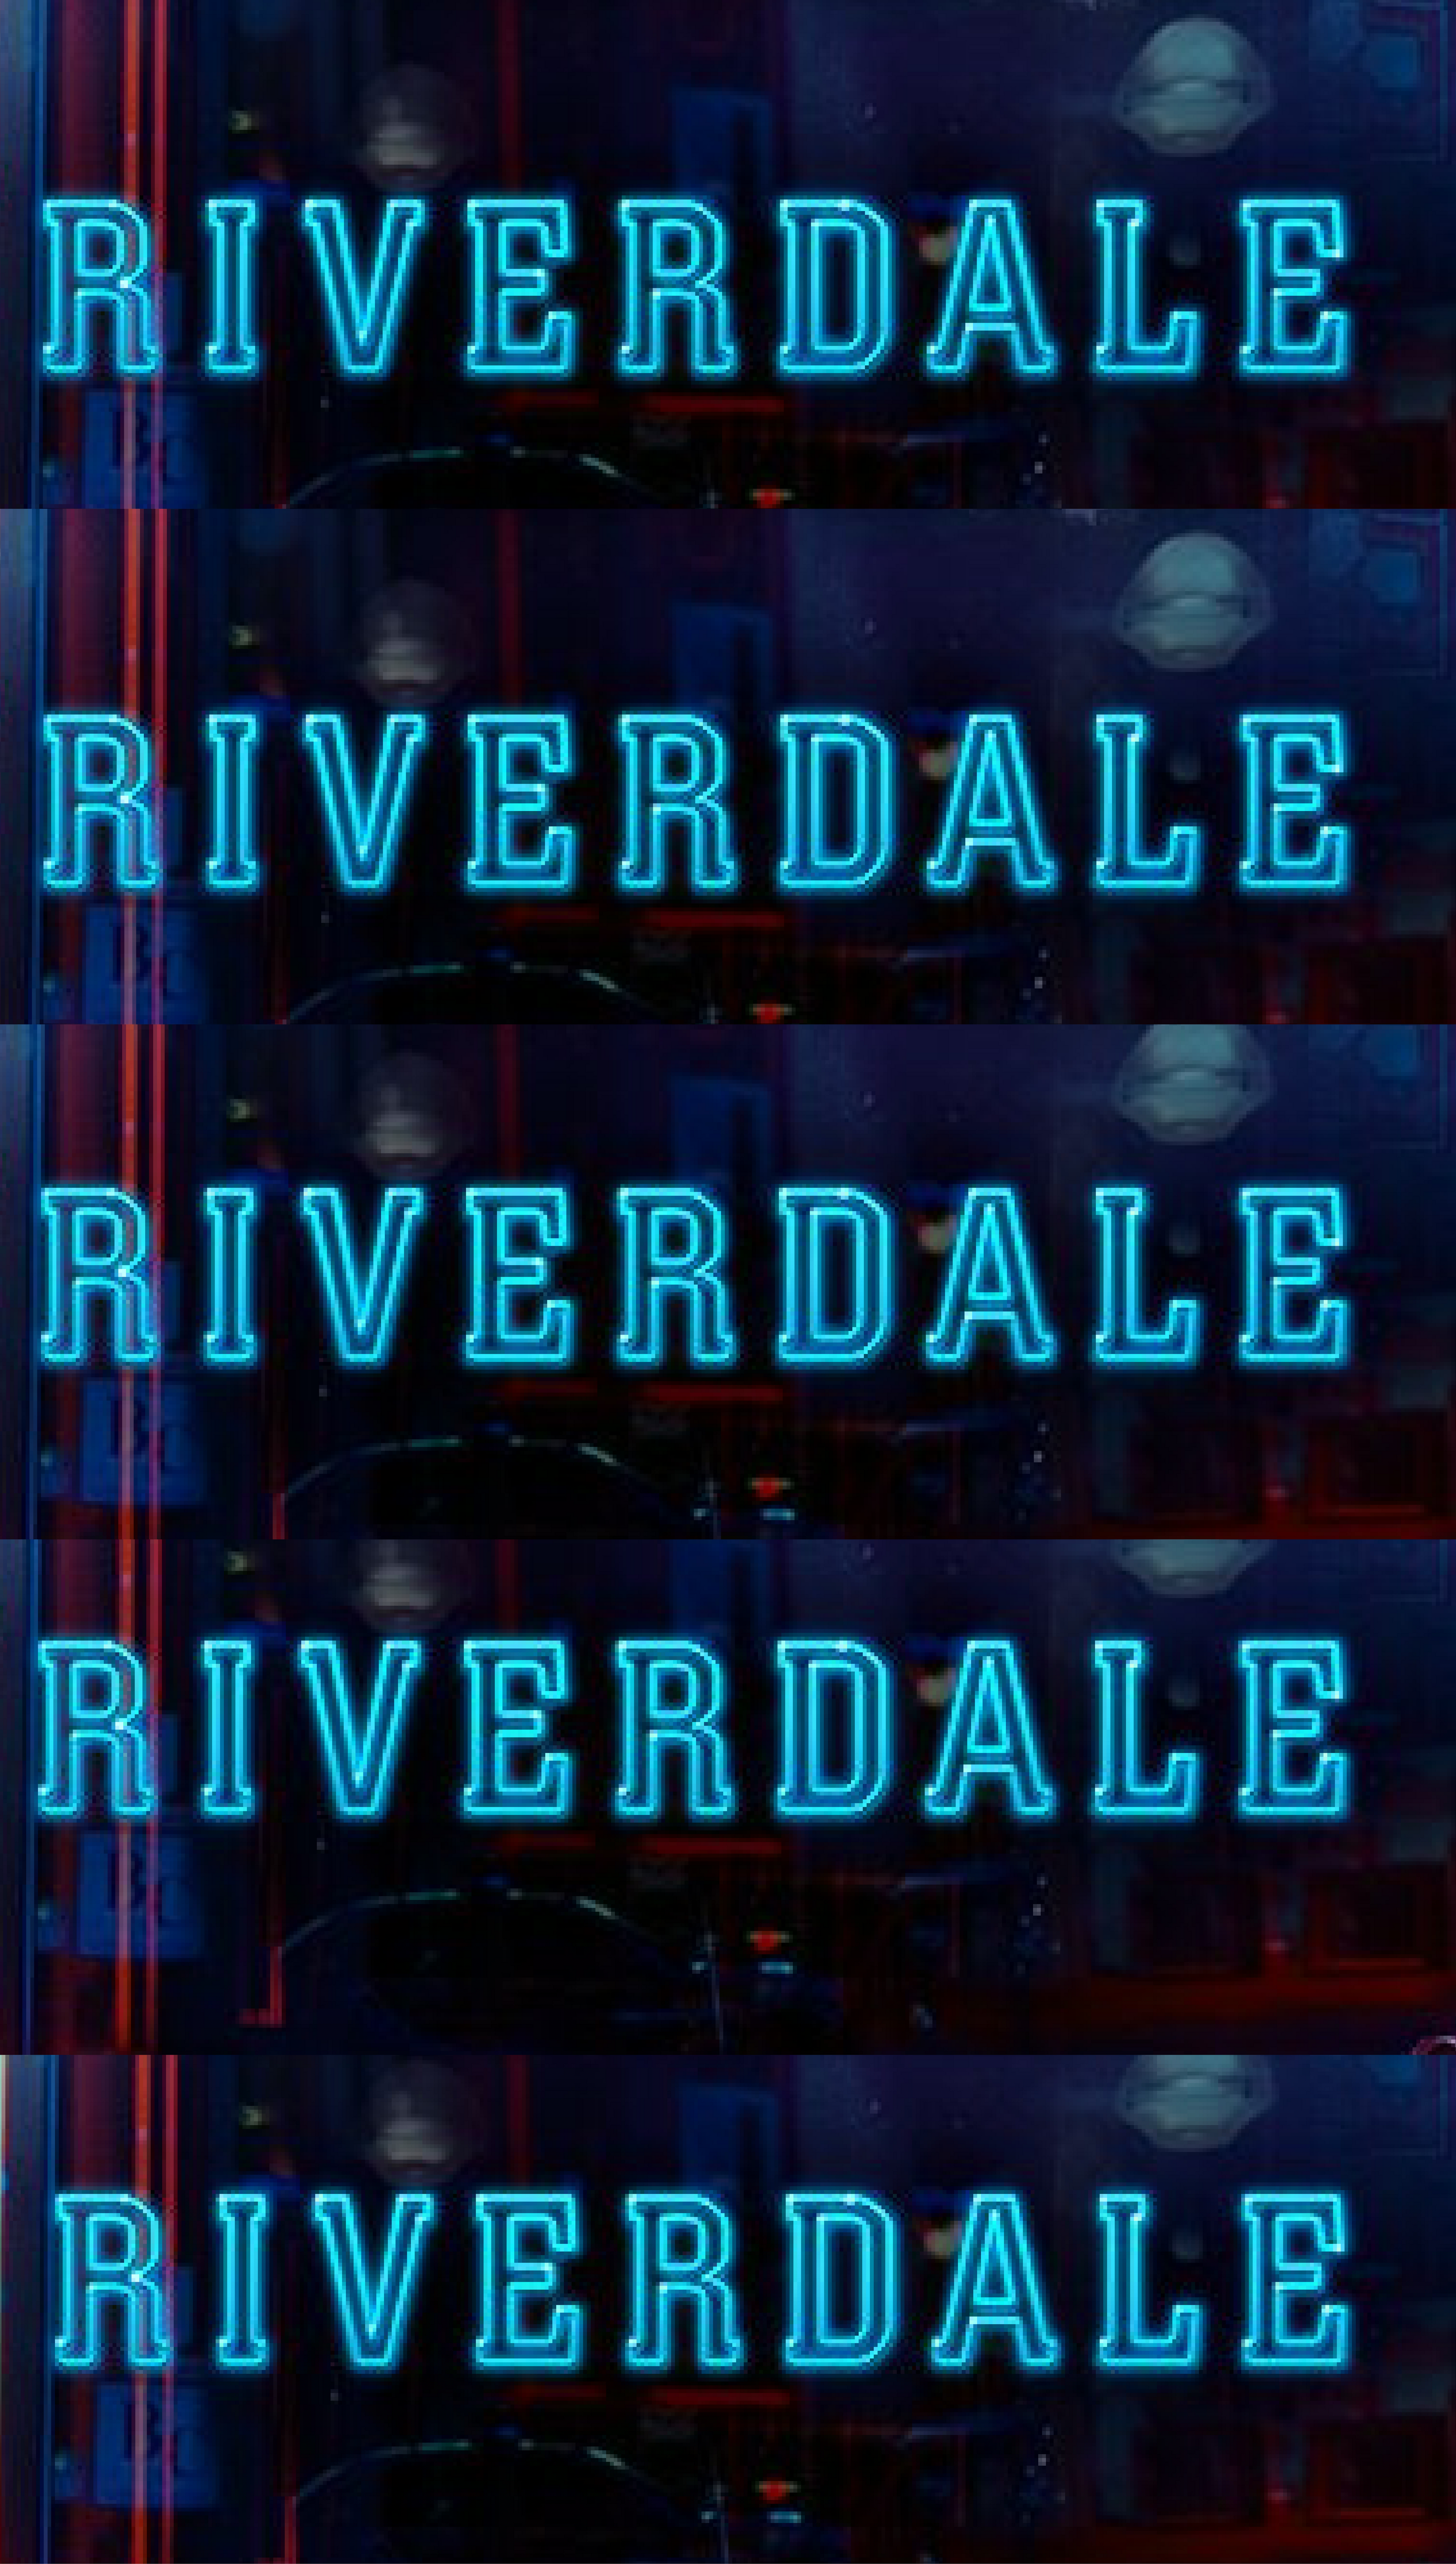 Riverdale Merch In Stock Tap On Our Bio S Link To Access Our Store